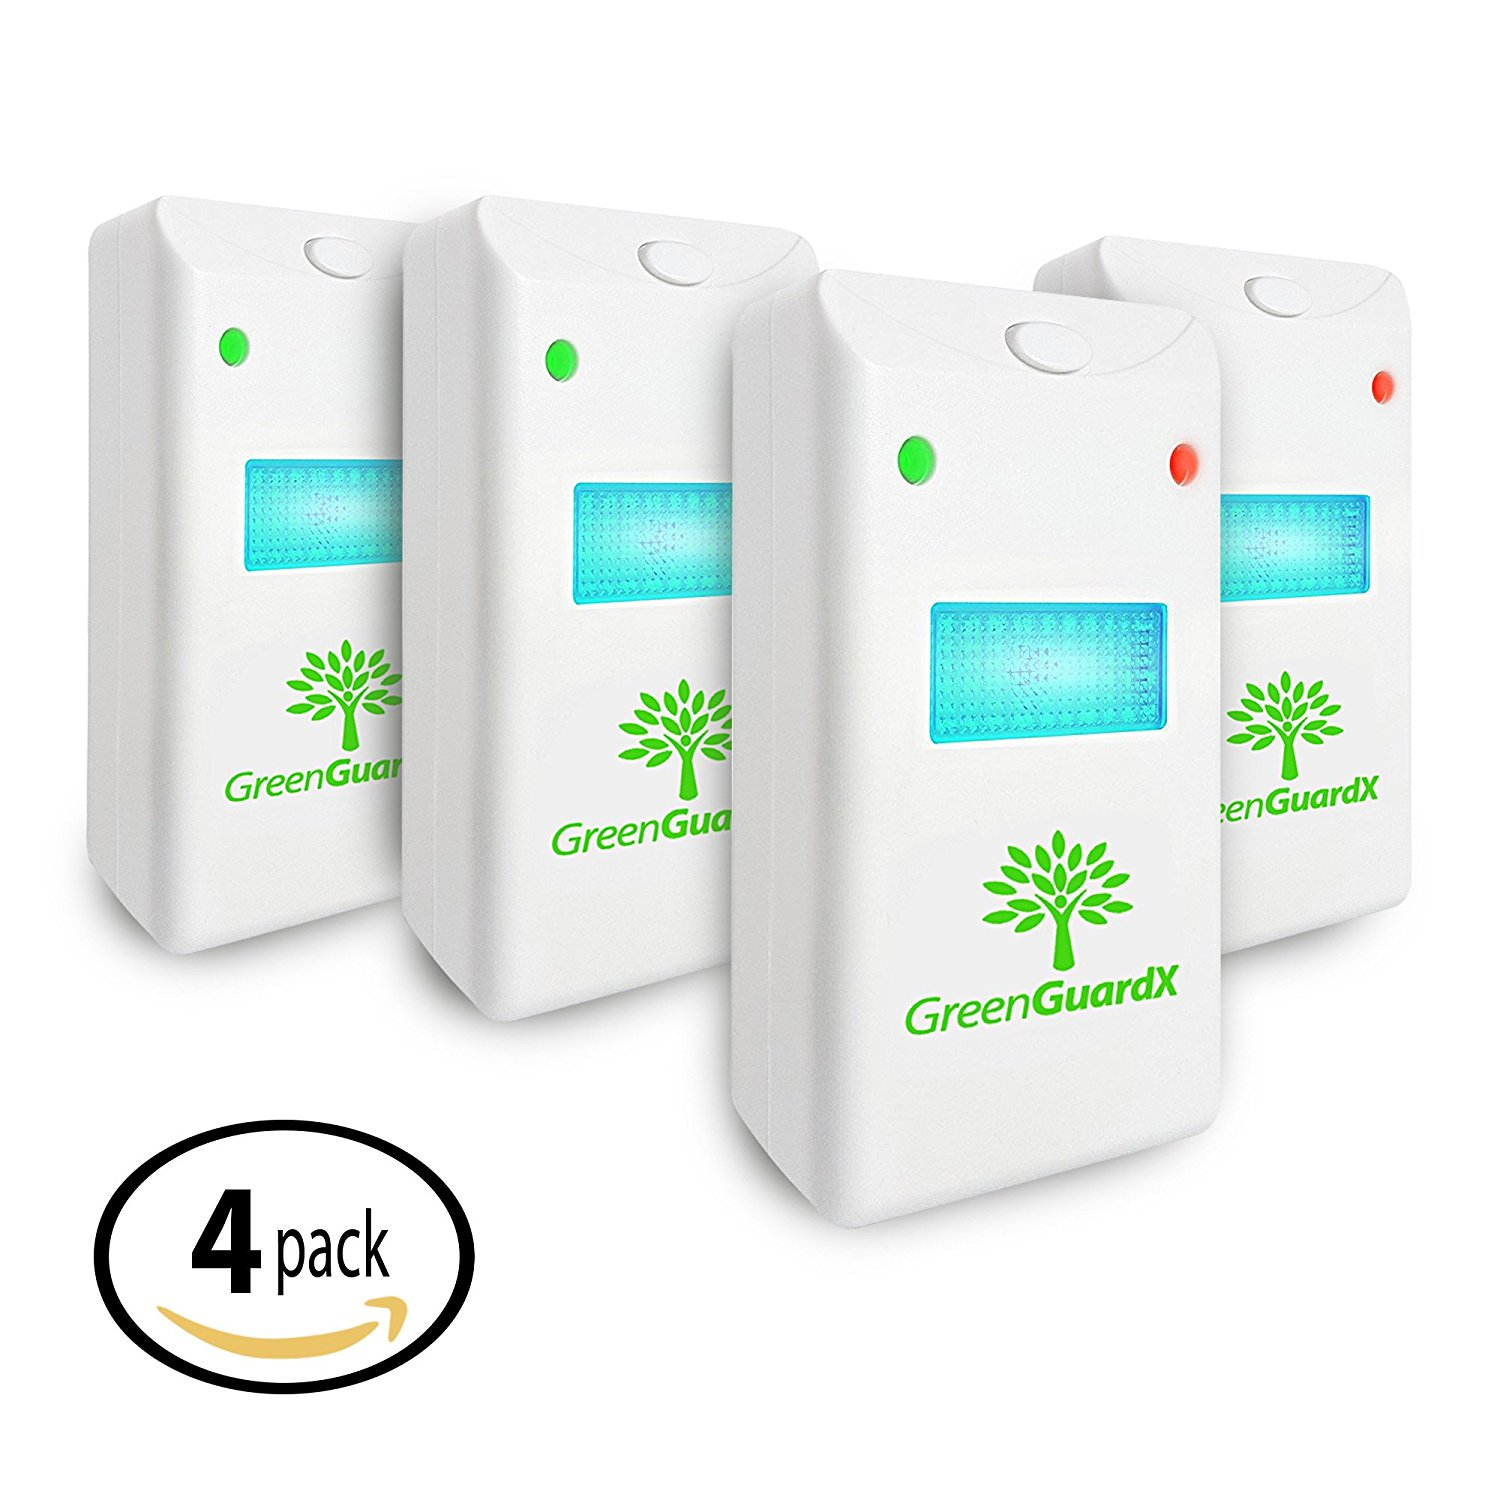 "Ultrasonic Pest Control Repeller (4-Pack)""Indoor Repellent for Mice, Mosquitos, Roaches, Spiders, Insects, & Rodents "" Ecofriendly Bug Repeller""Children & Pet Safe, Non-Toxic (Upgraded)"